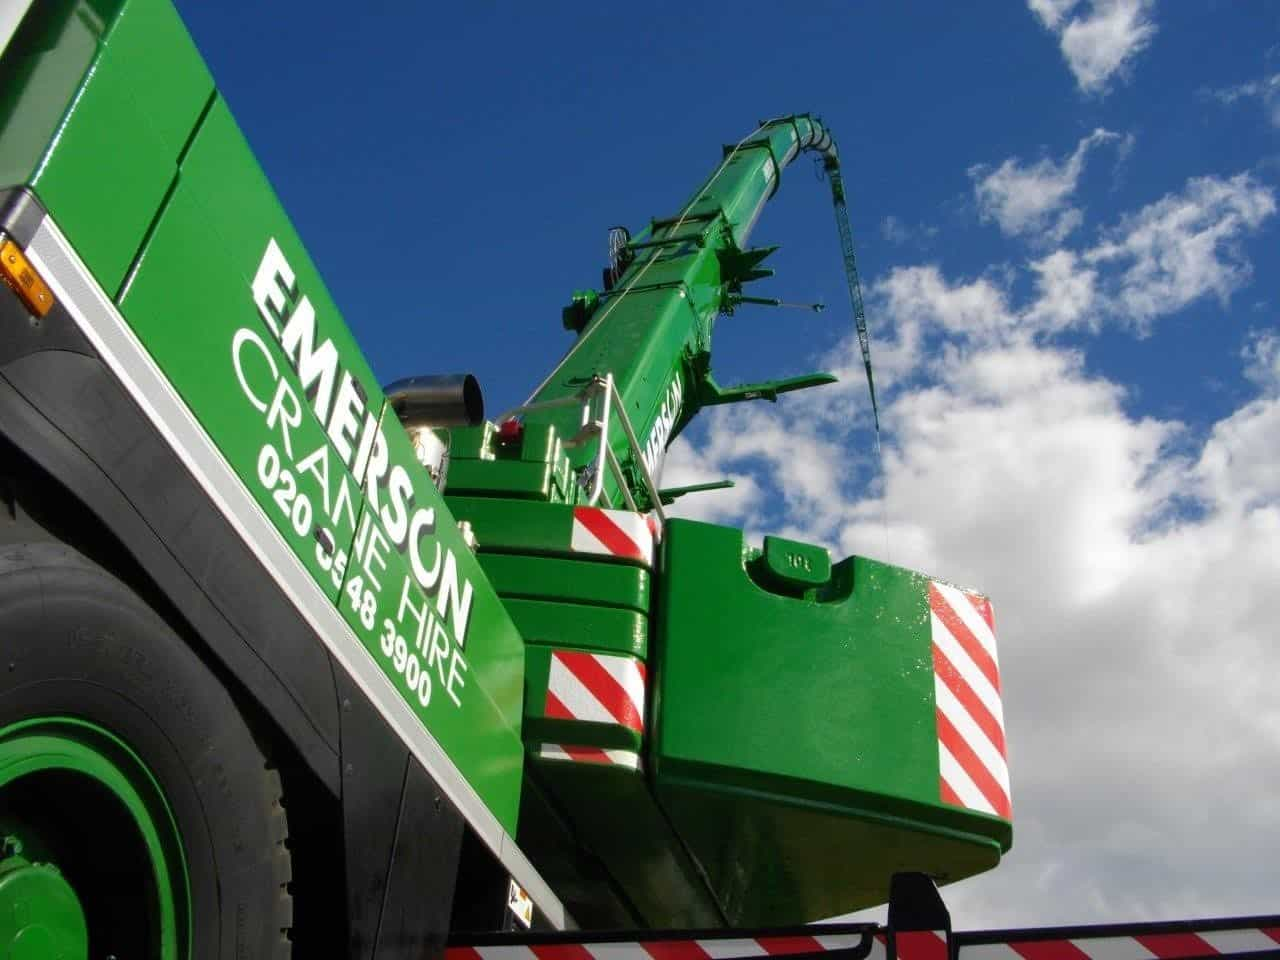 Emerson Crane Hire: Crane Hire Service Throughout London